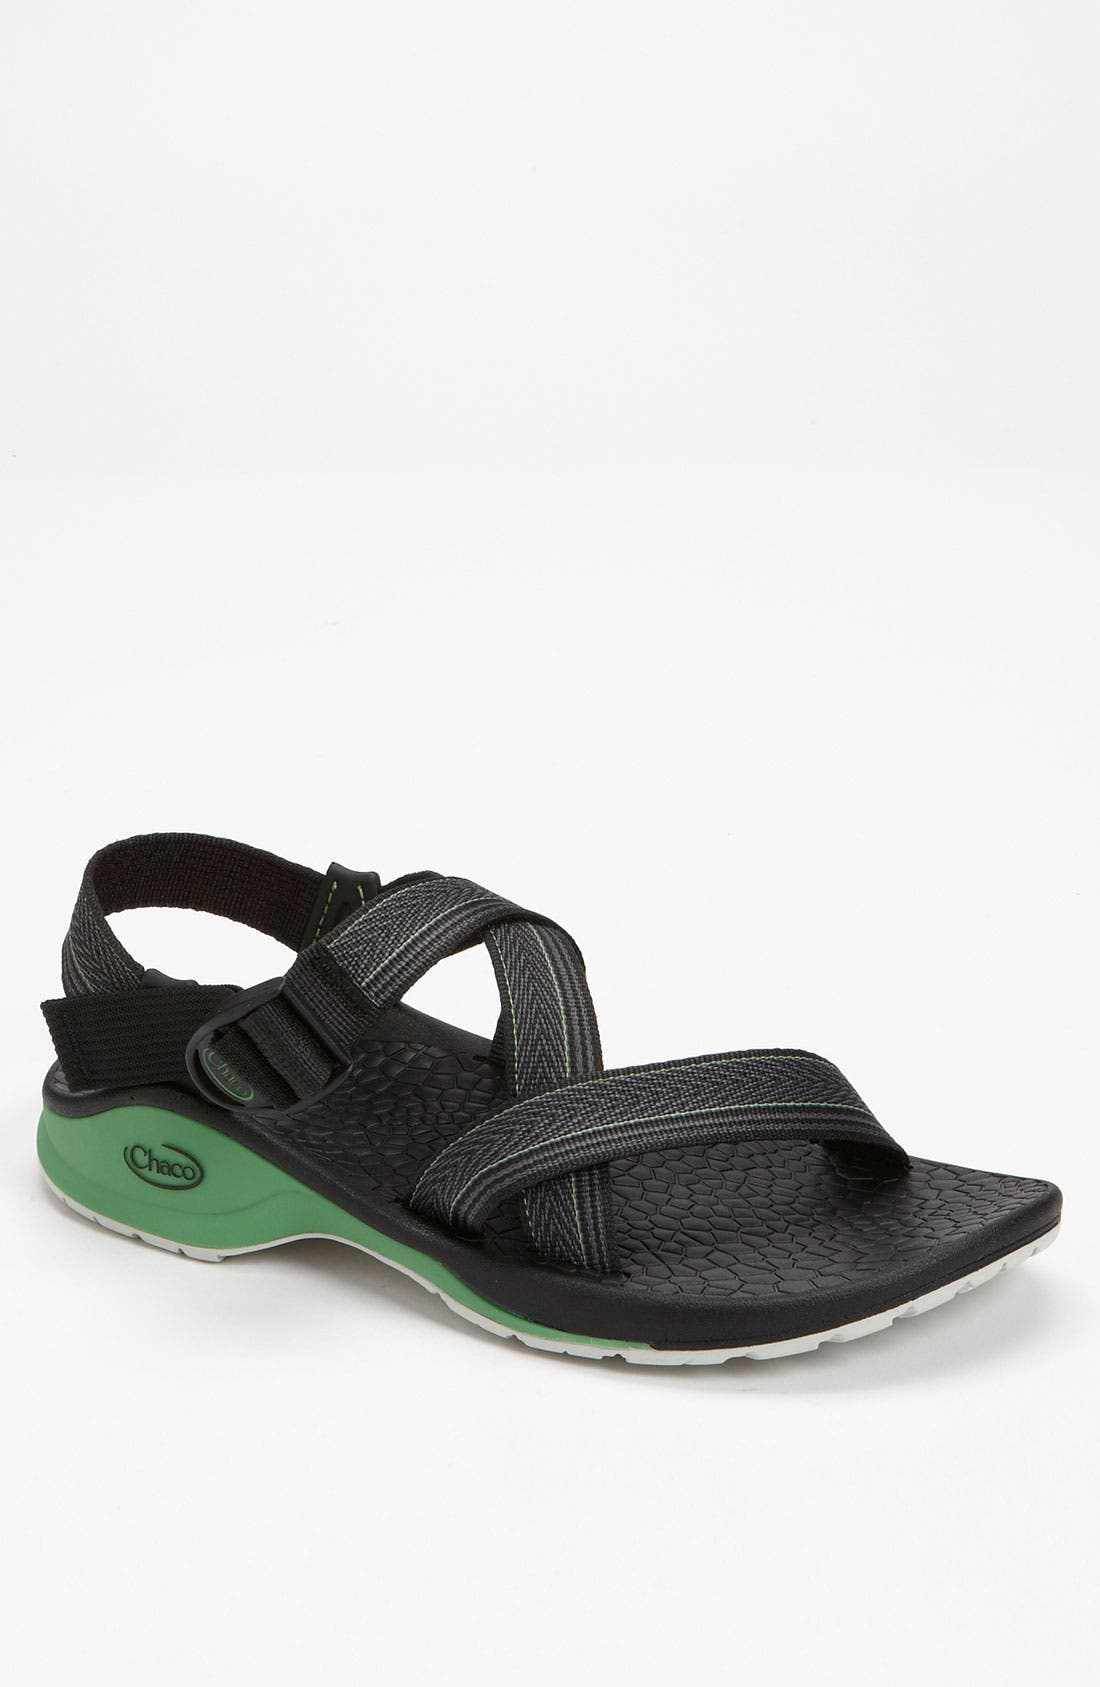 Alternate Image 1 Selected - Chaco 'Updraft' Sandal